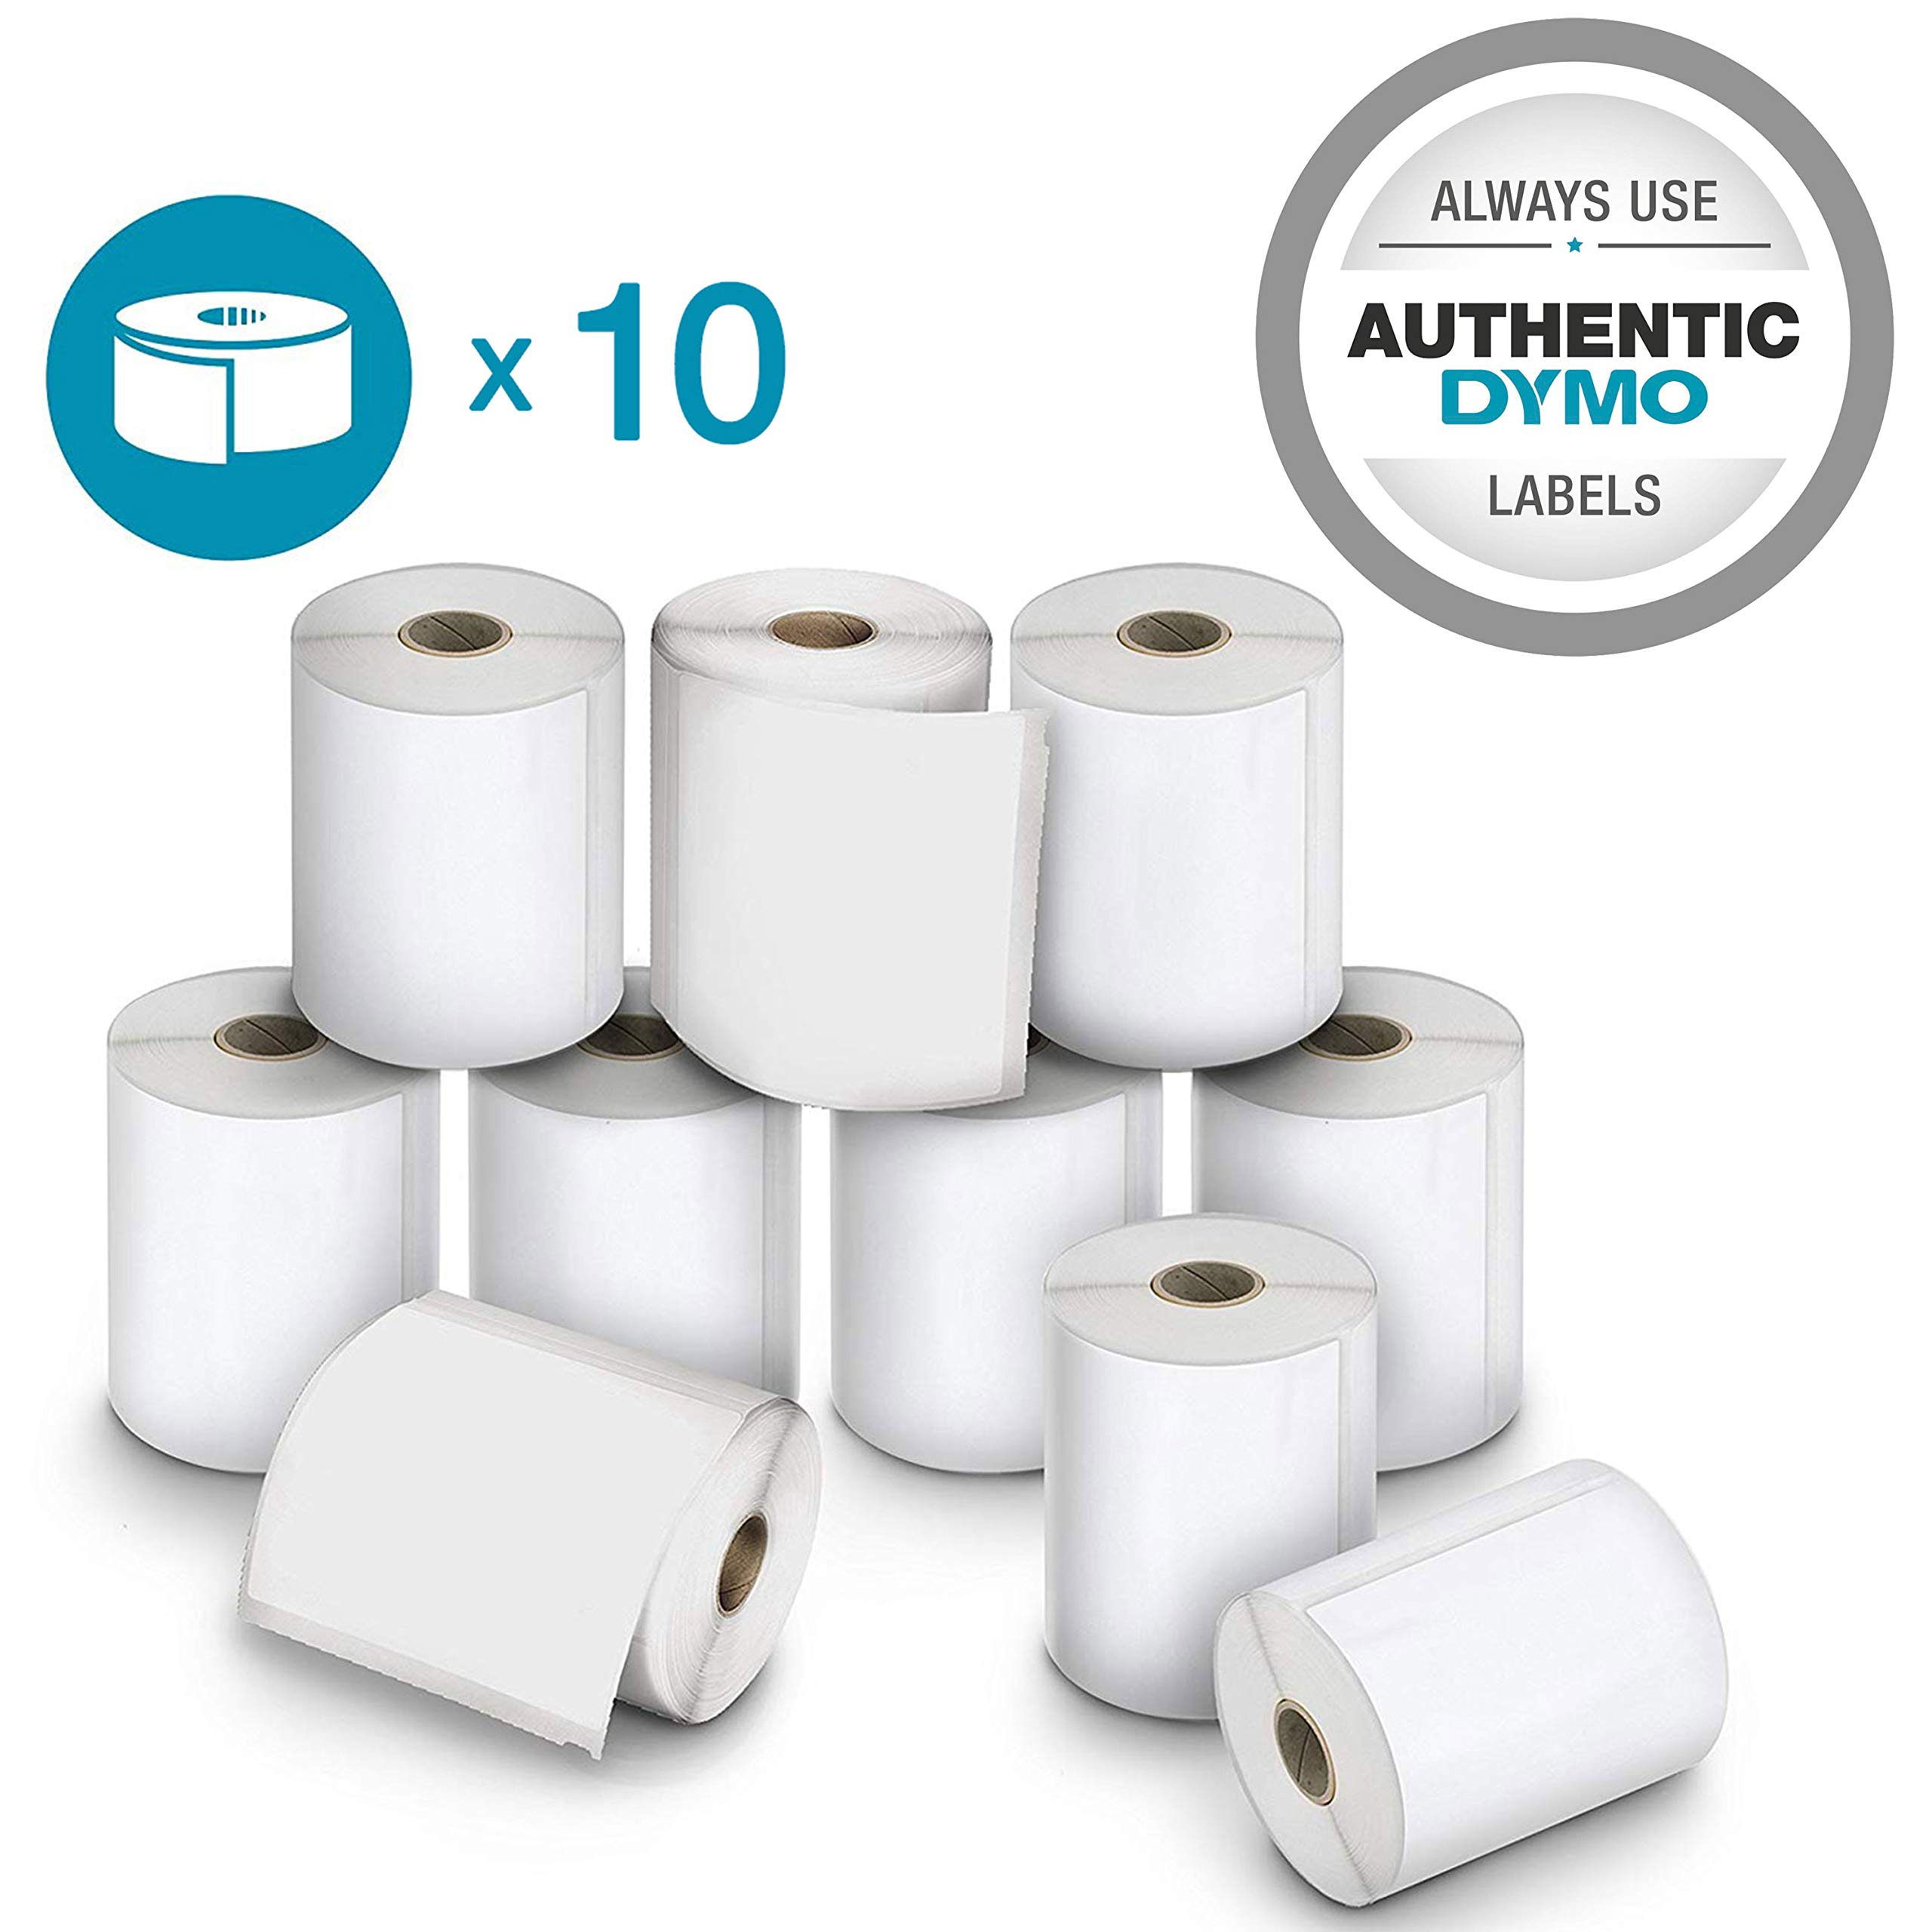 DYMO Authentic LW Extra Large Shipping Labels | Authentic DYMO Labels for LabelWriter 4XL Label Printer (4'' x 6''), 10 Roll of 220 (2200 Total) by DYMO